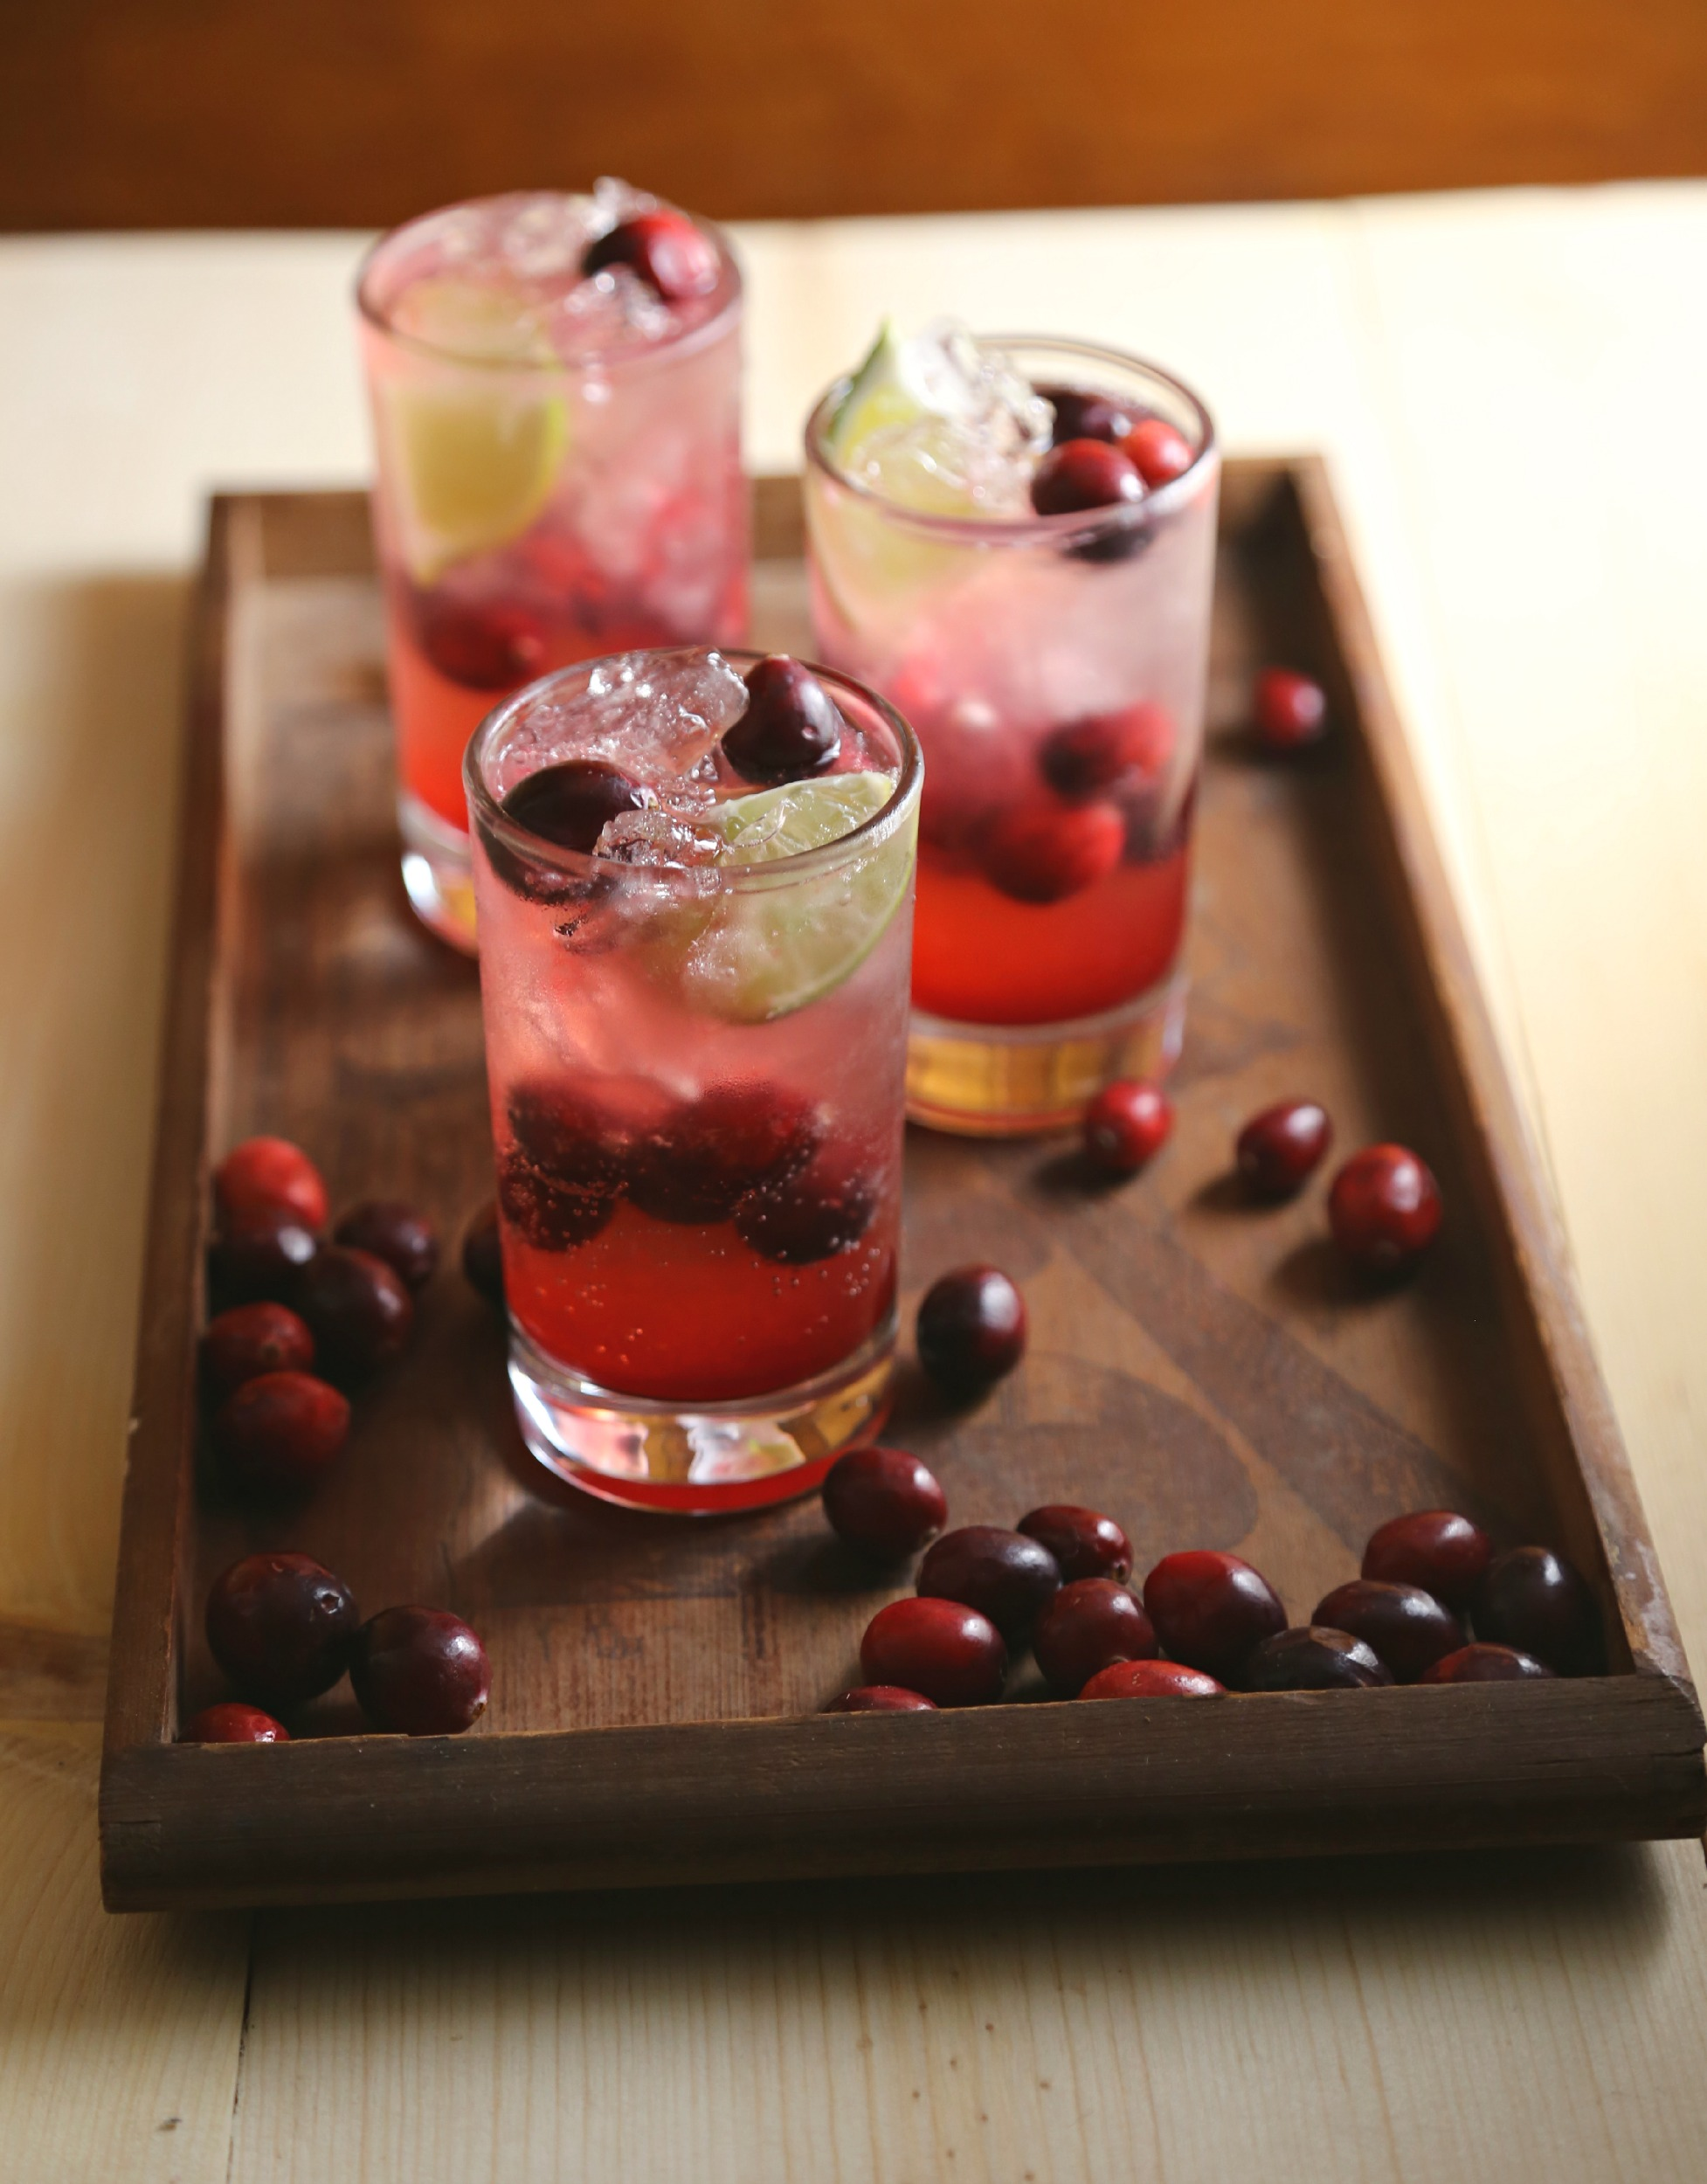 cranberry-pisco-chilcano-cocktail-vianneyrodriguez-sweetlifebake